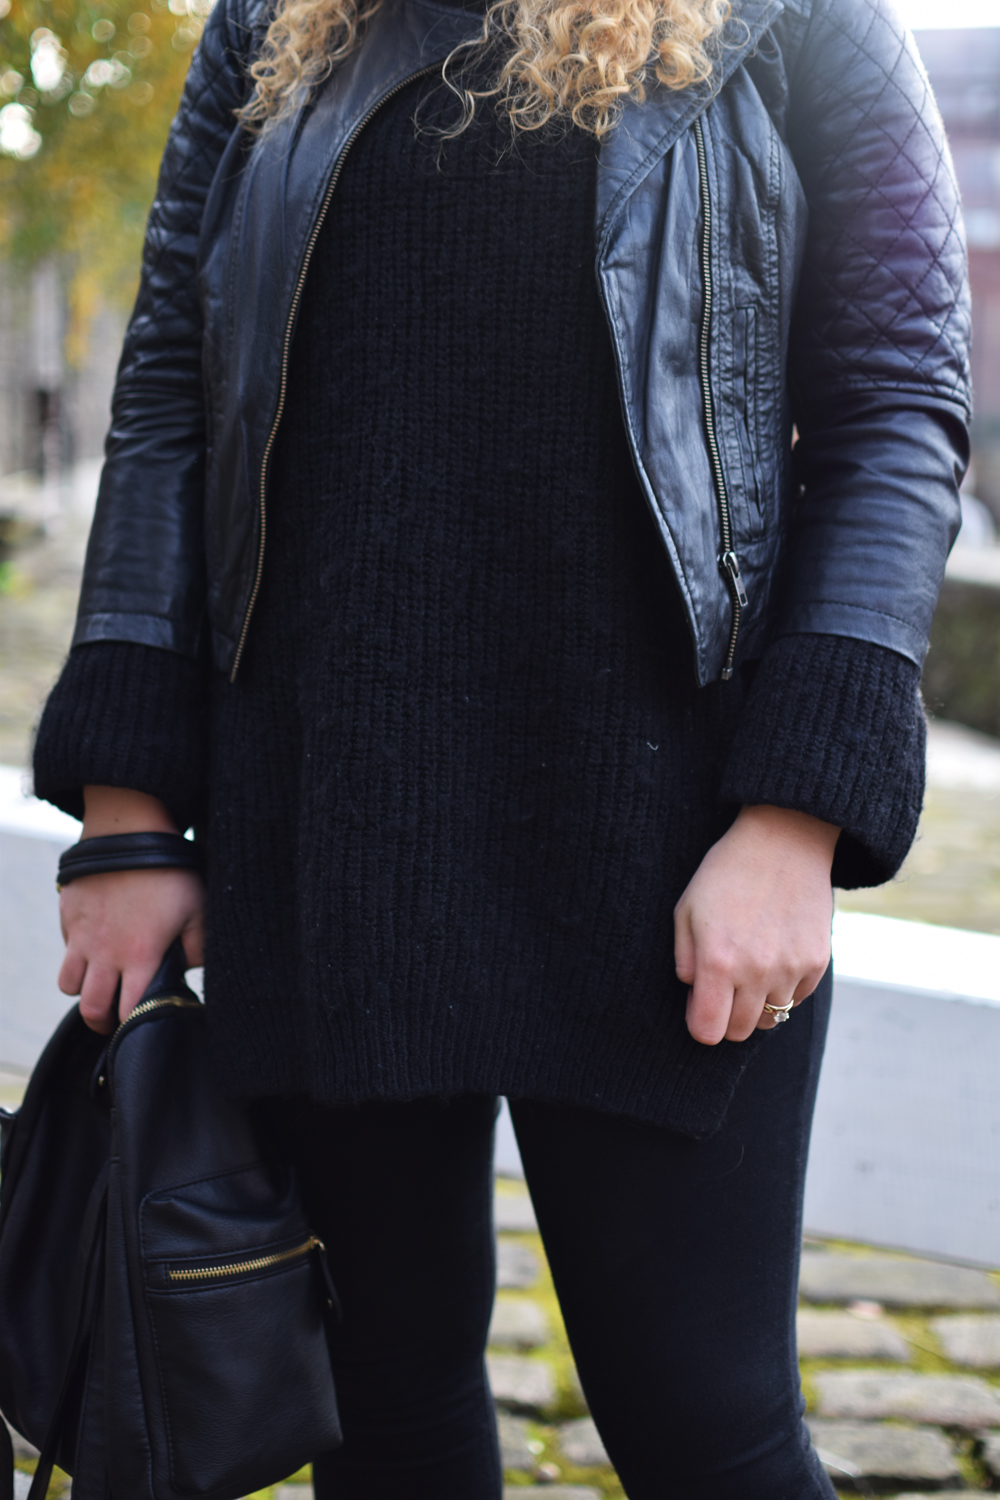 all black leather jacket and knit jumper